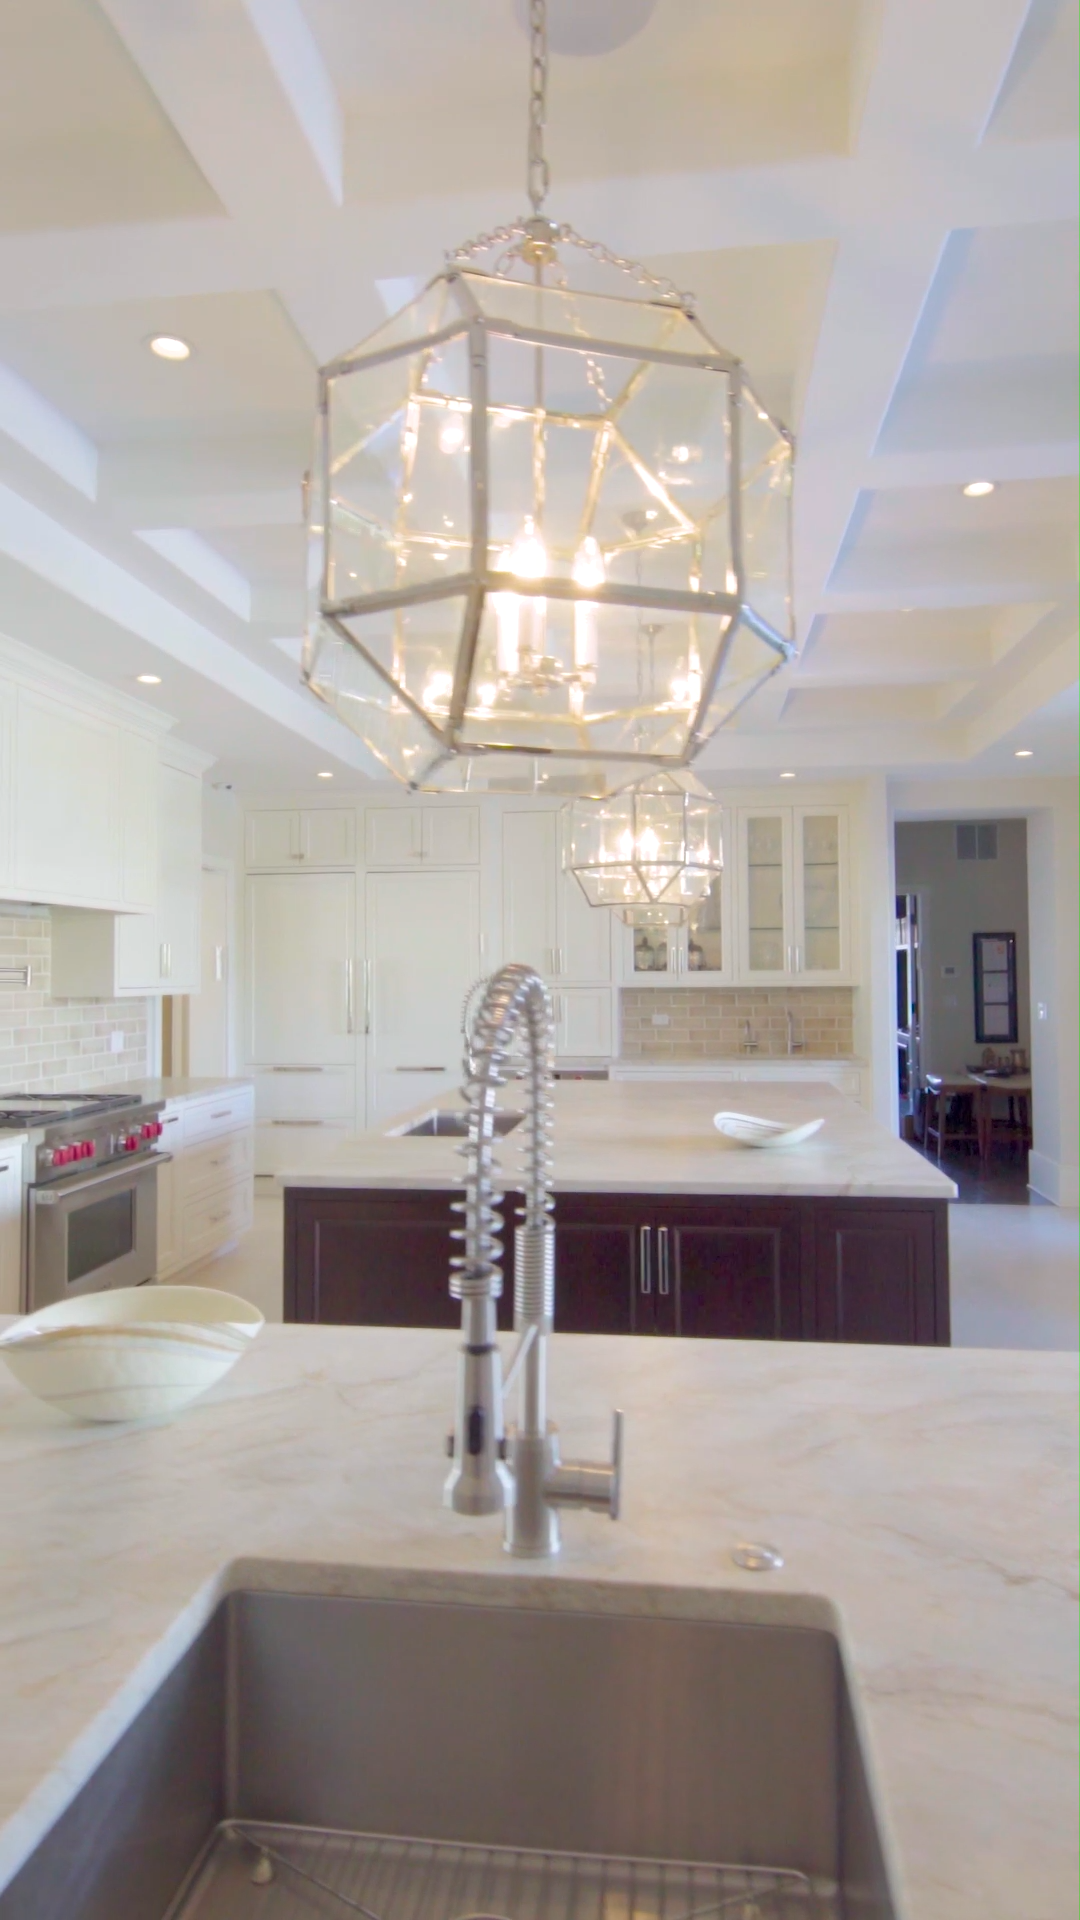 These Morris Lantern pendant lights were perfectly chosen for this custom kitchen.  The style of the lights matches the coffered ceiling while the polished nickel matches the handles and finishes throughout the space. Brighten your cooking space with custom lighting design by Amrami!